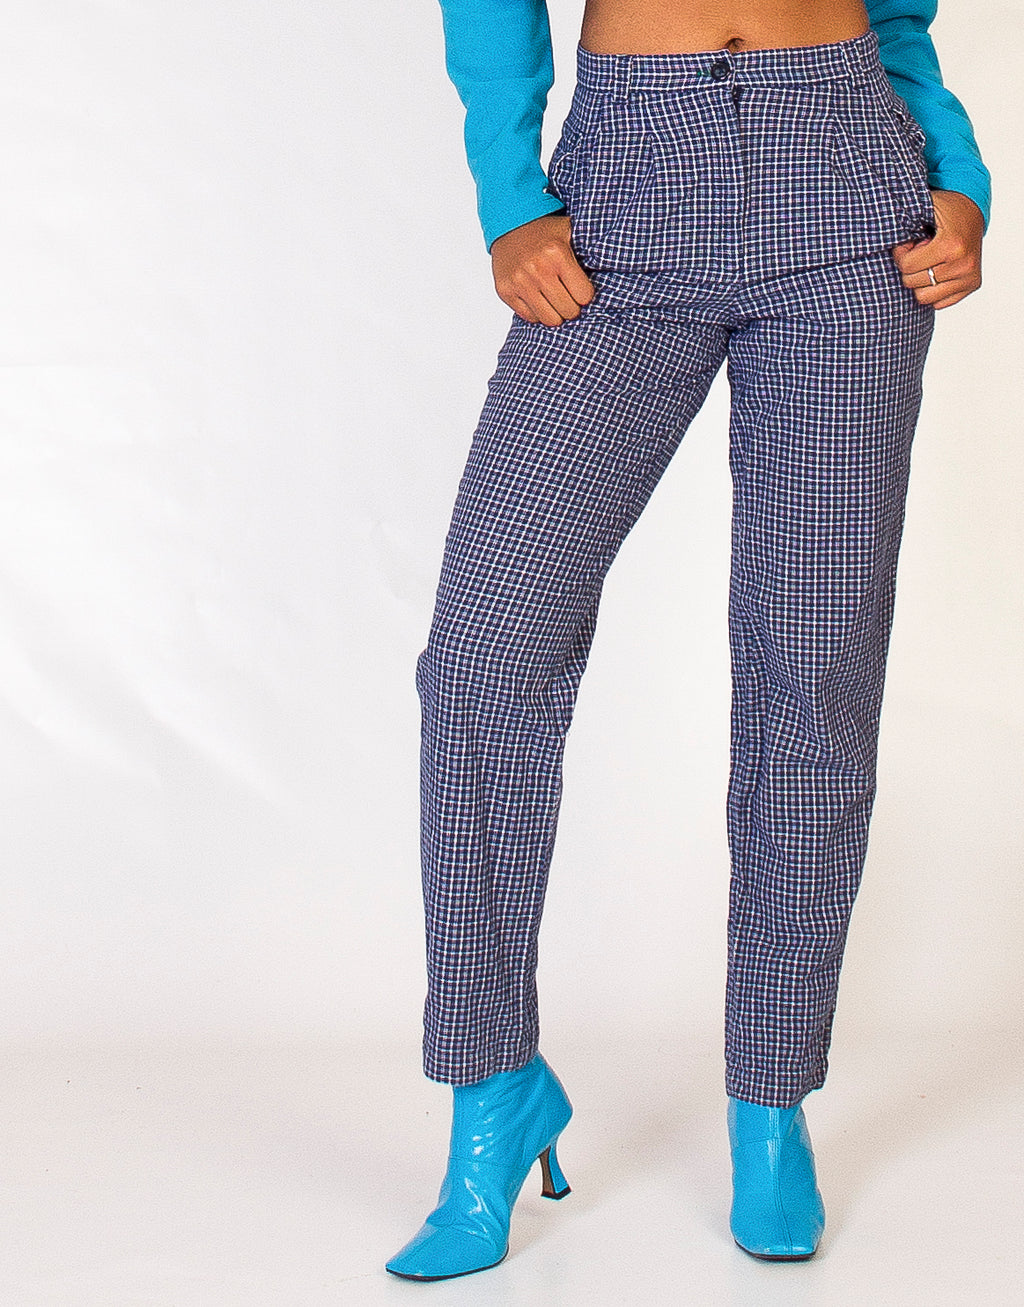 TOMMY HILFIGER BLUE CHECK TROUSERS